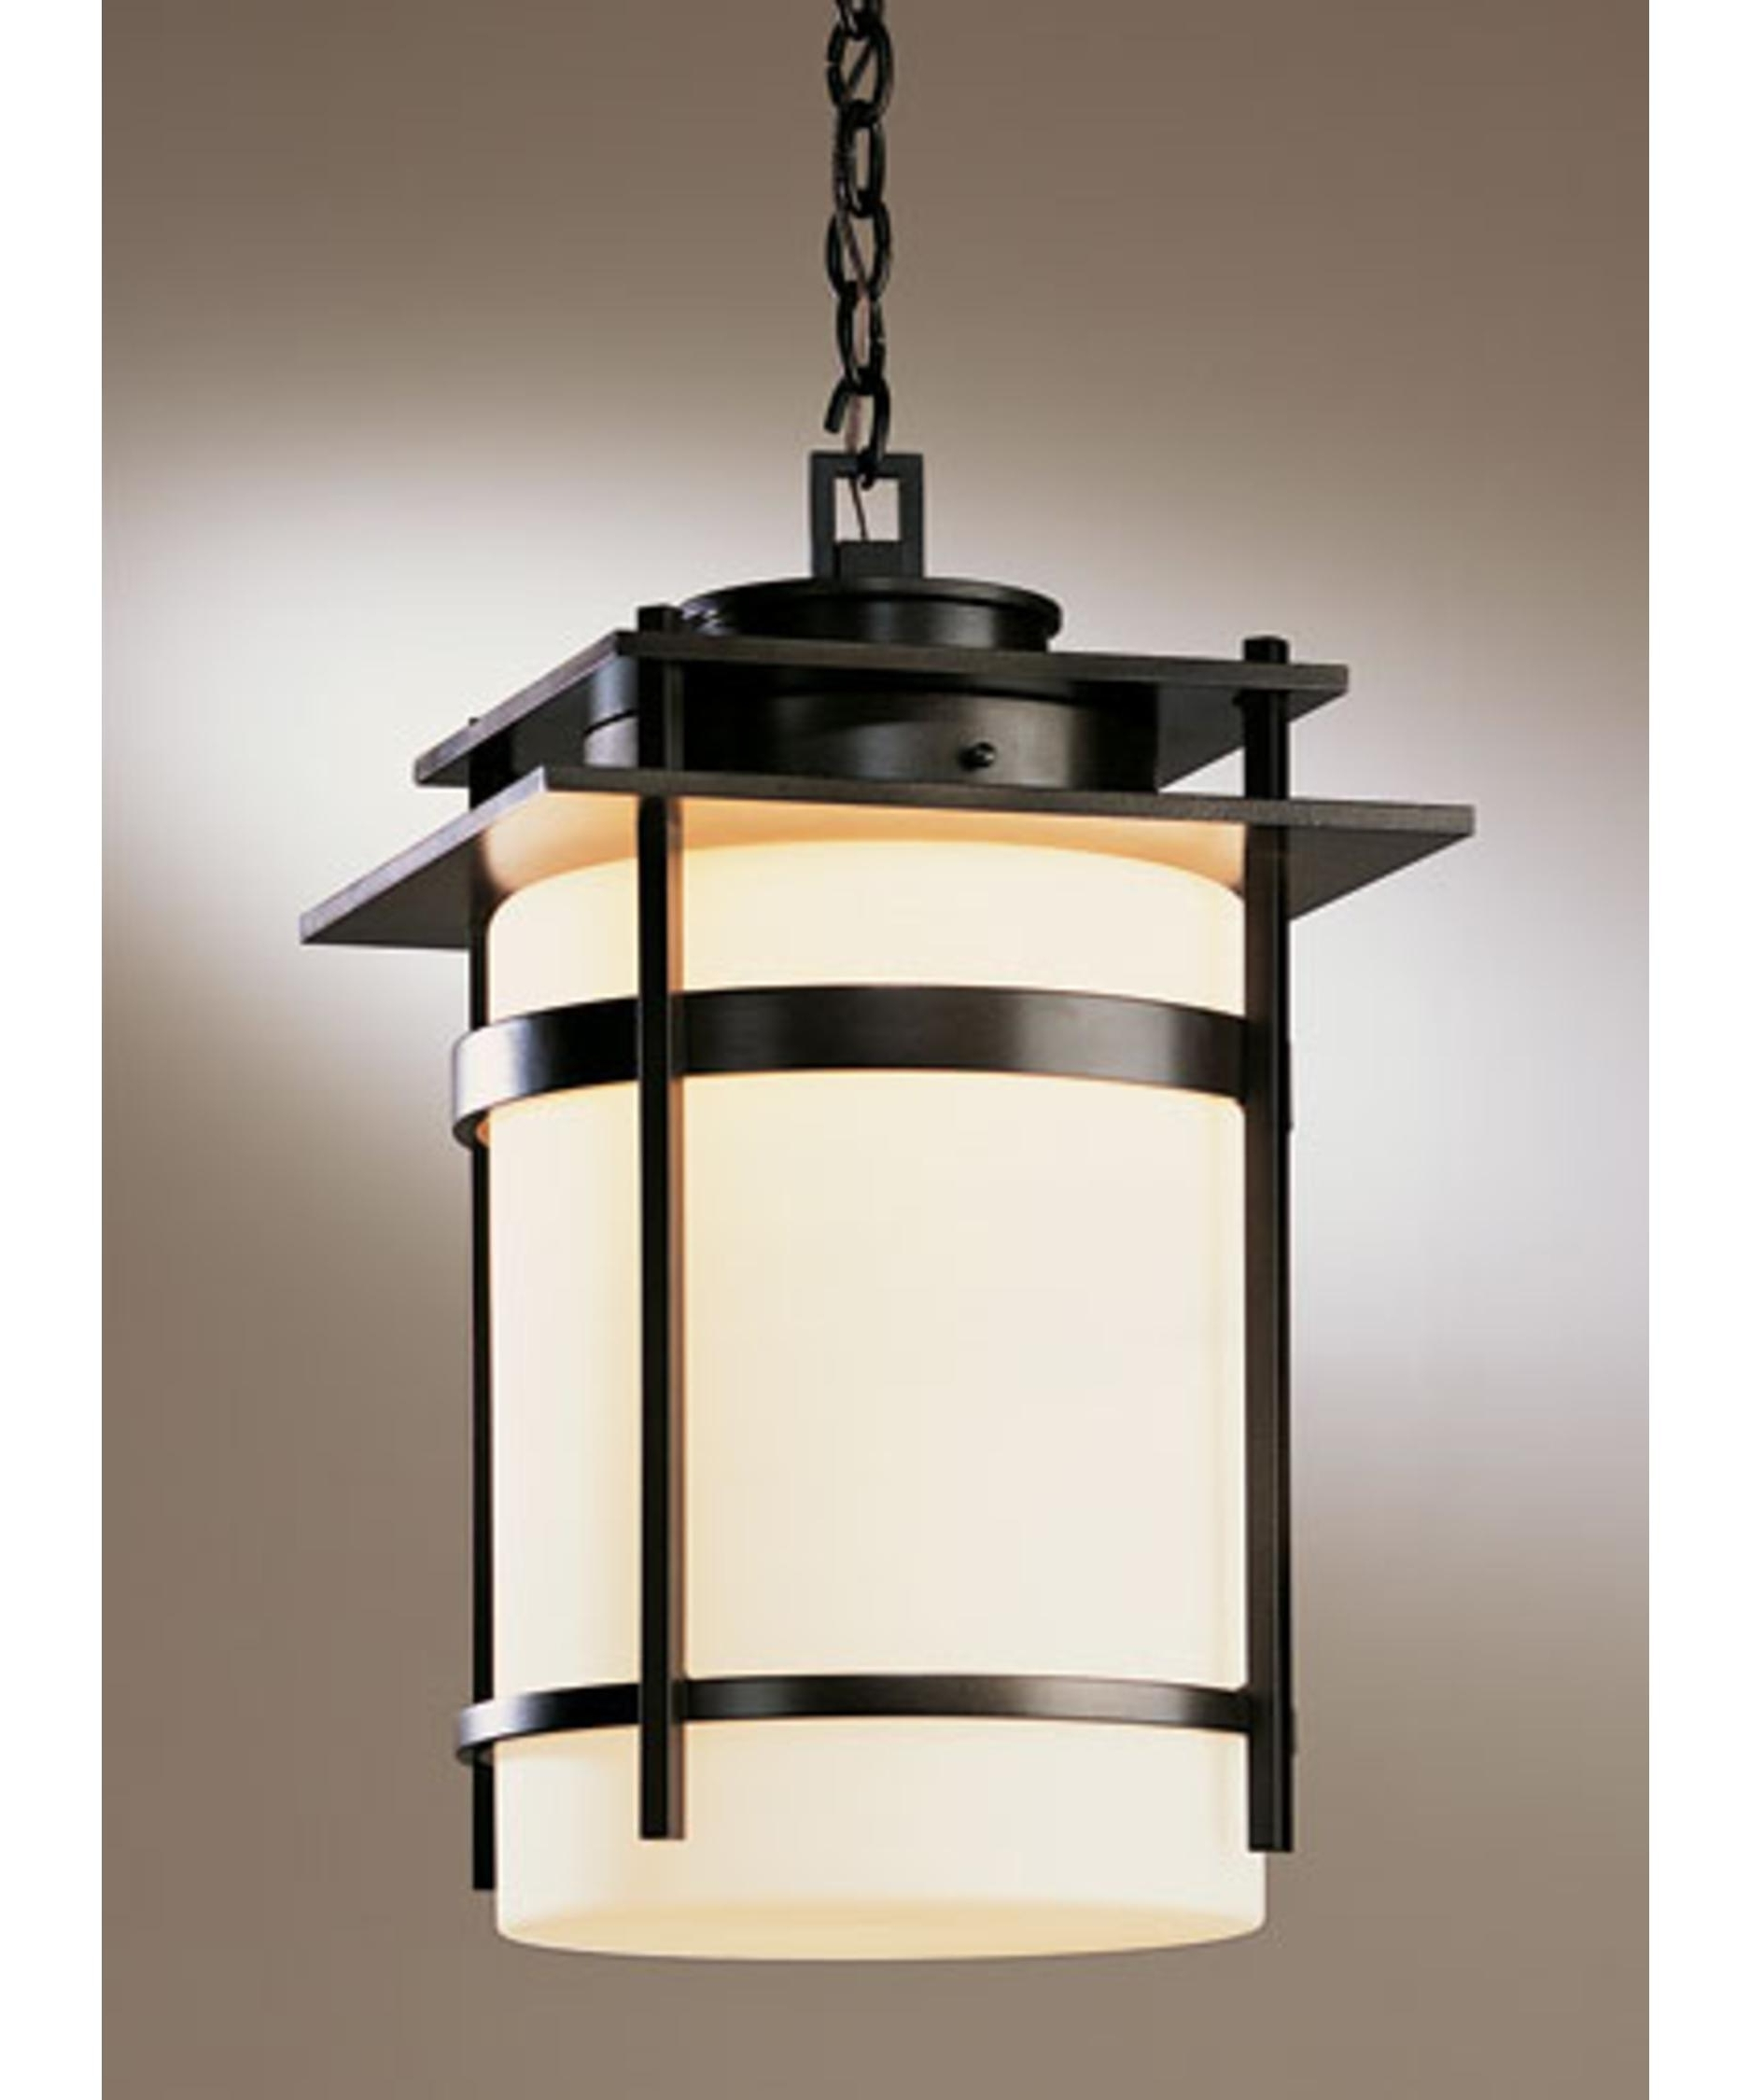 Trendy Outdoor Hanging Lights Masters Throughout Lantern Light Fixtures (View 19 of 20)